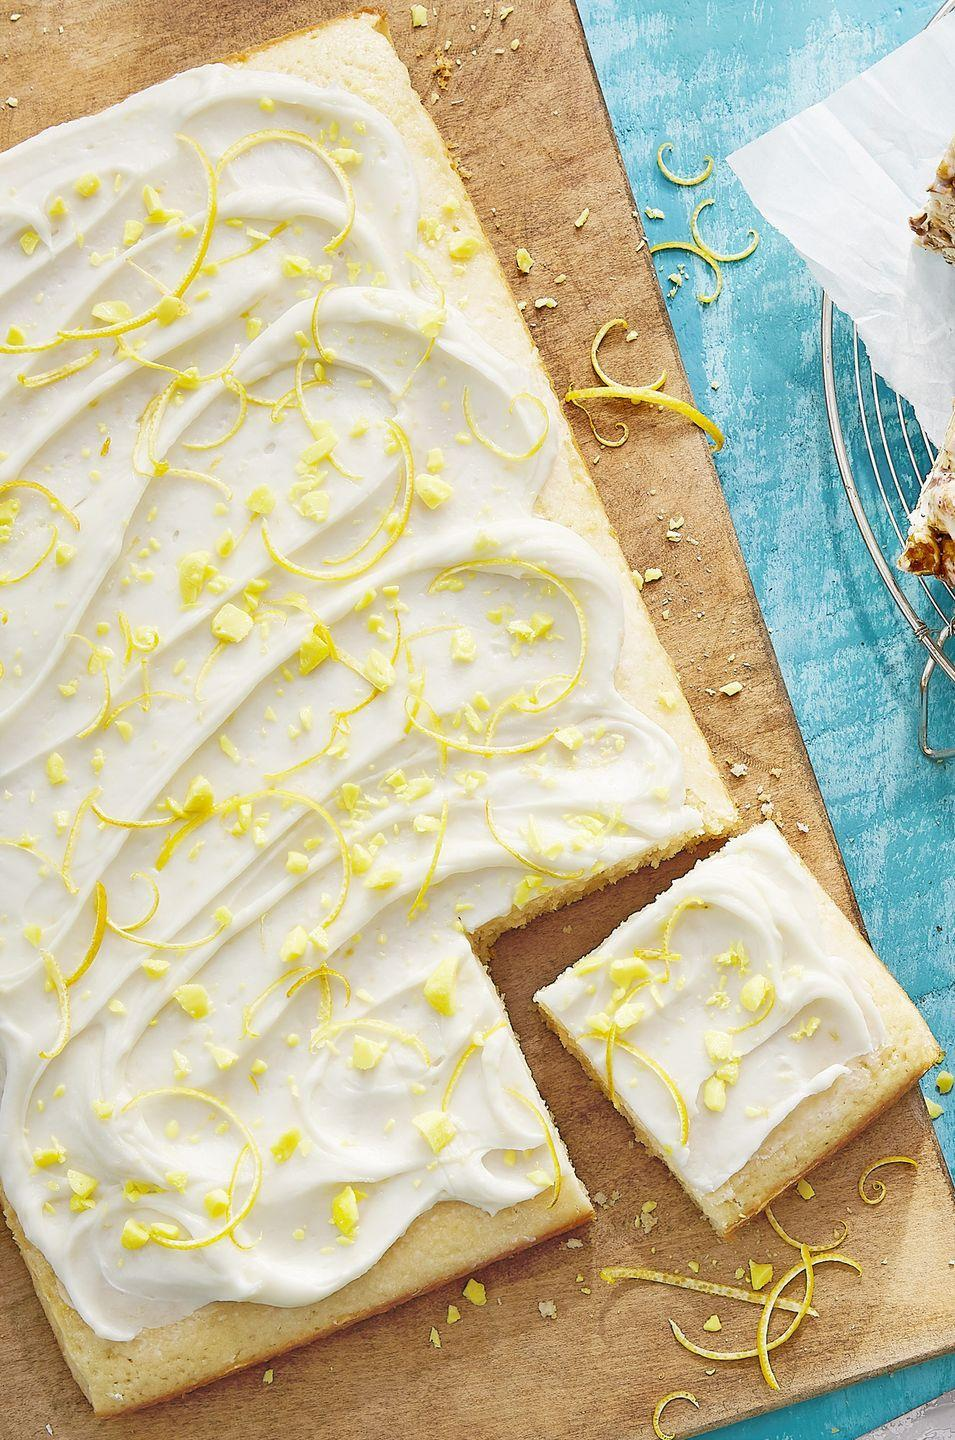 "<p>If there's a better combination than lemon, cream cheese, and cake, we haven't found it yet. Bonus: This sheet cake is perfect for feeding a crowd! </p><p><strong><a href=""https://www.countryliving.com/food-drinks/recipes/a43070/dukes-lemon-drop-sheet-cake-recipe/"" rel=""nofollow noopener"" target=""_blank"" data-ylk=""slk:Get the recipe"" class=""link rapid-noclick-resp"">Get the recipe</a>.</strong></p>"